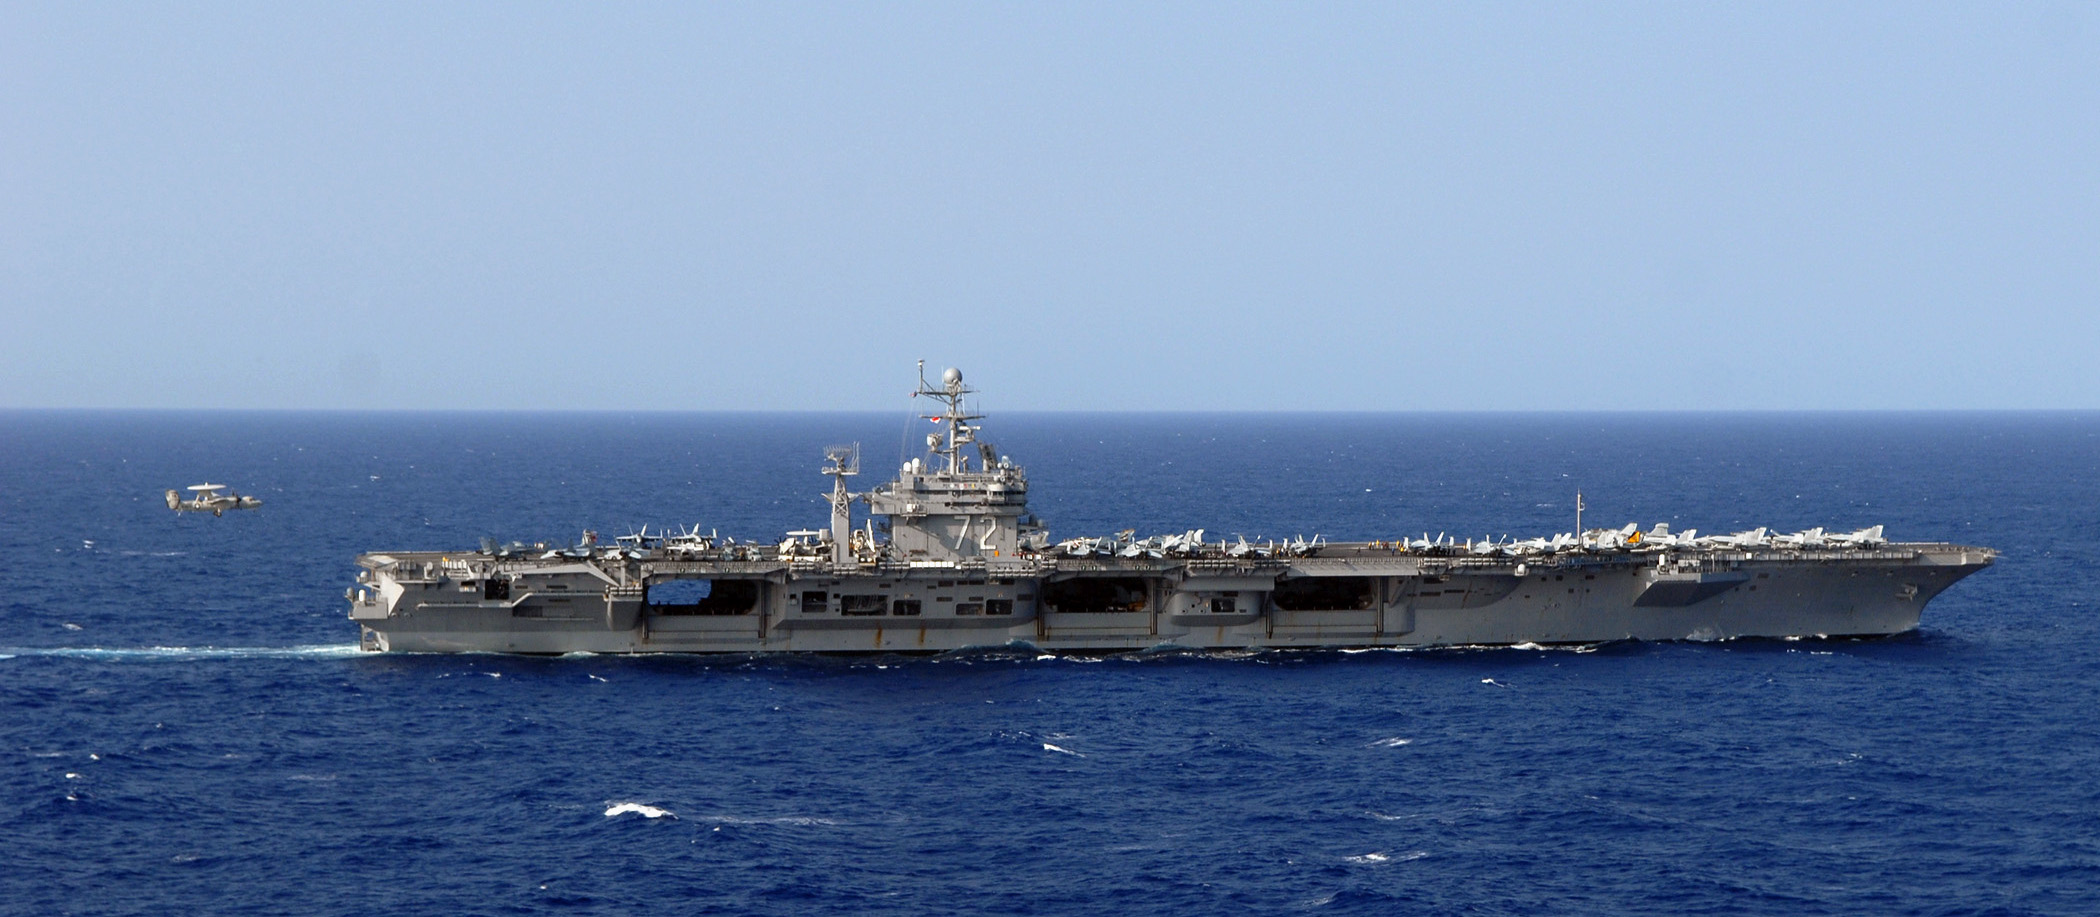 USS_Abraham_Lincoln_side_profile.jpg